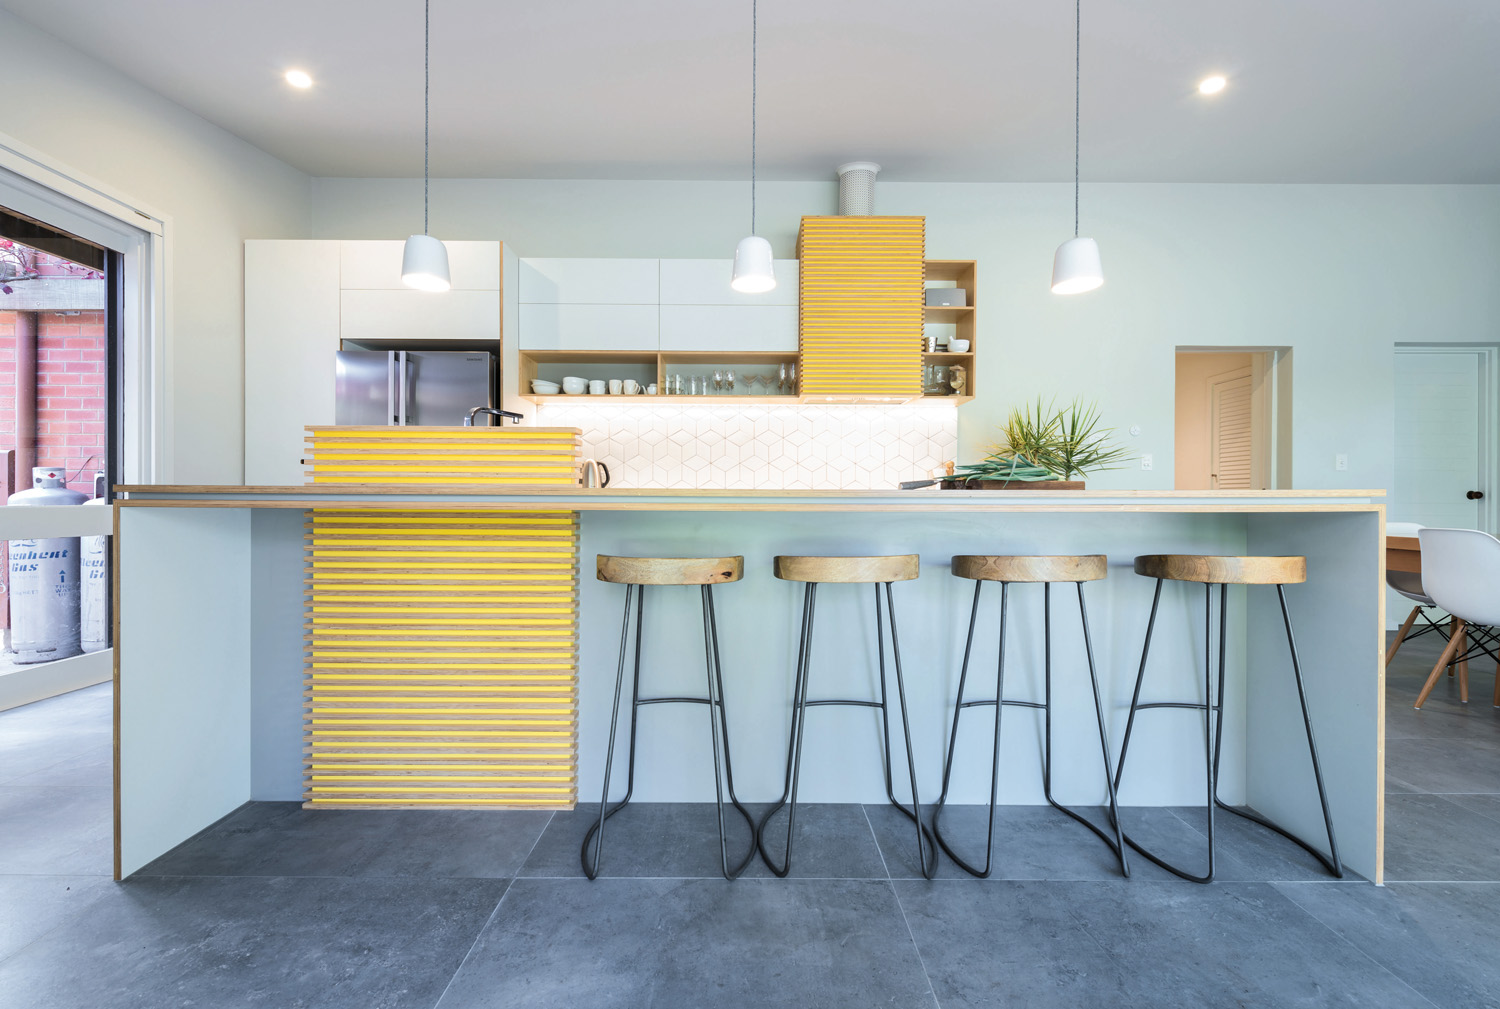 Sustainable spaces: what makes a sustainable kitchen? - Completehome